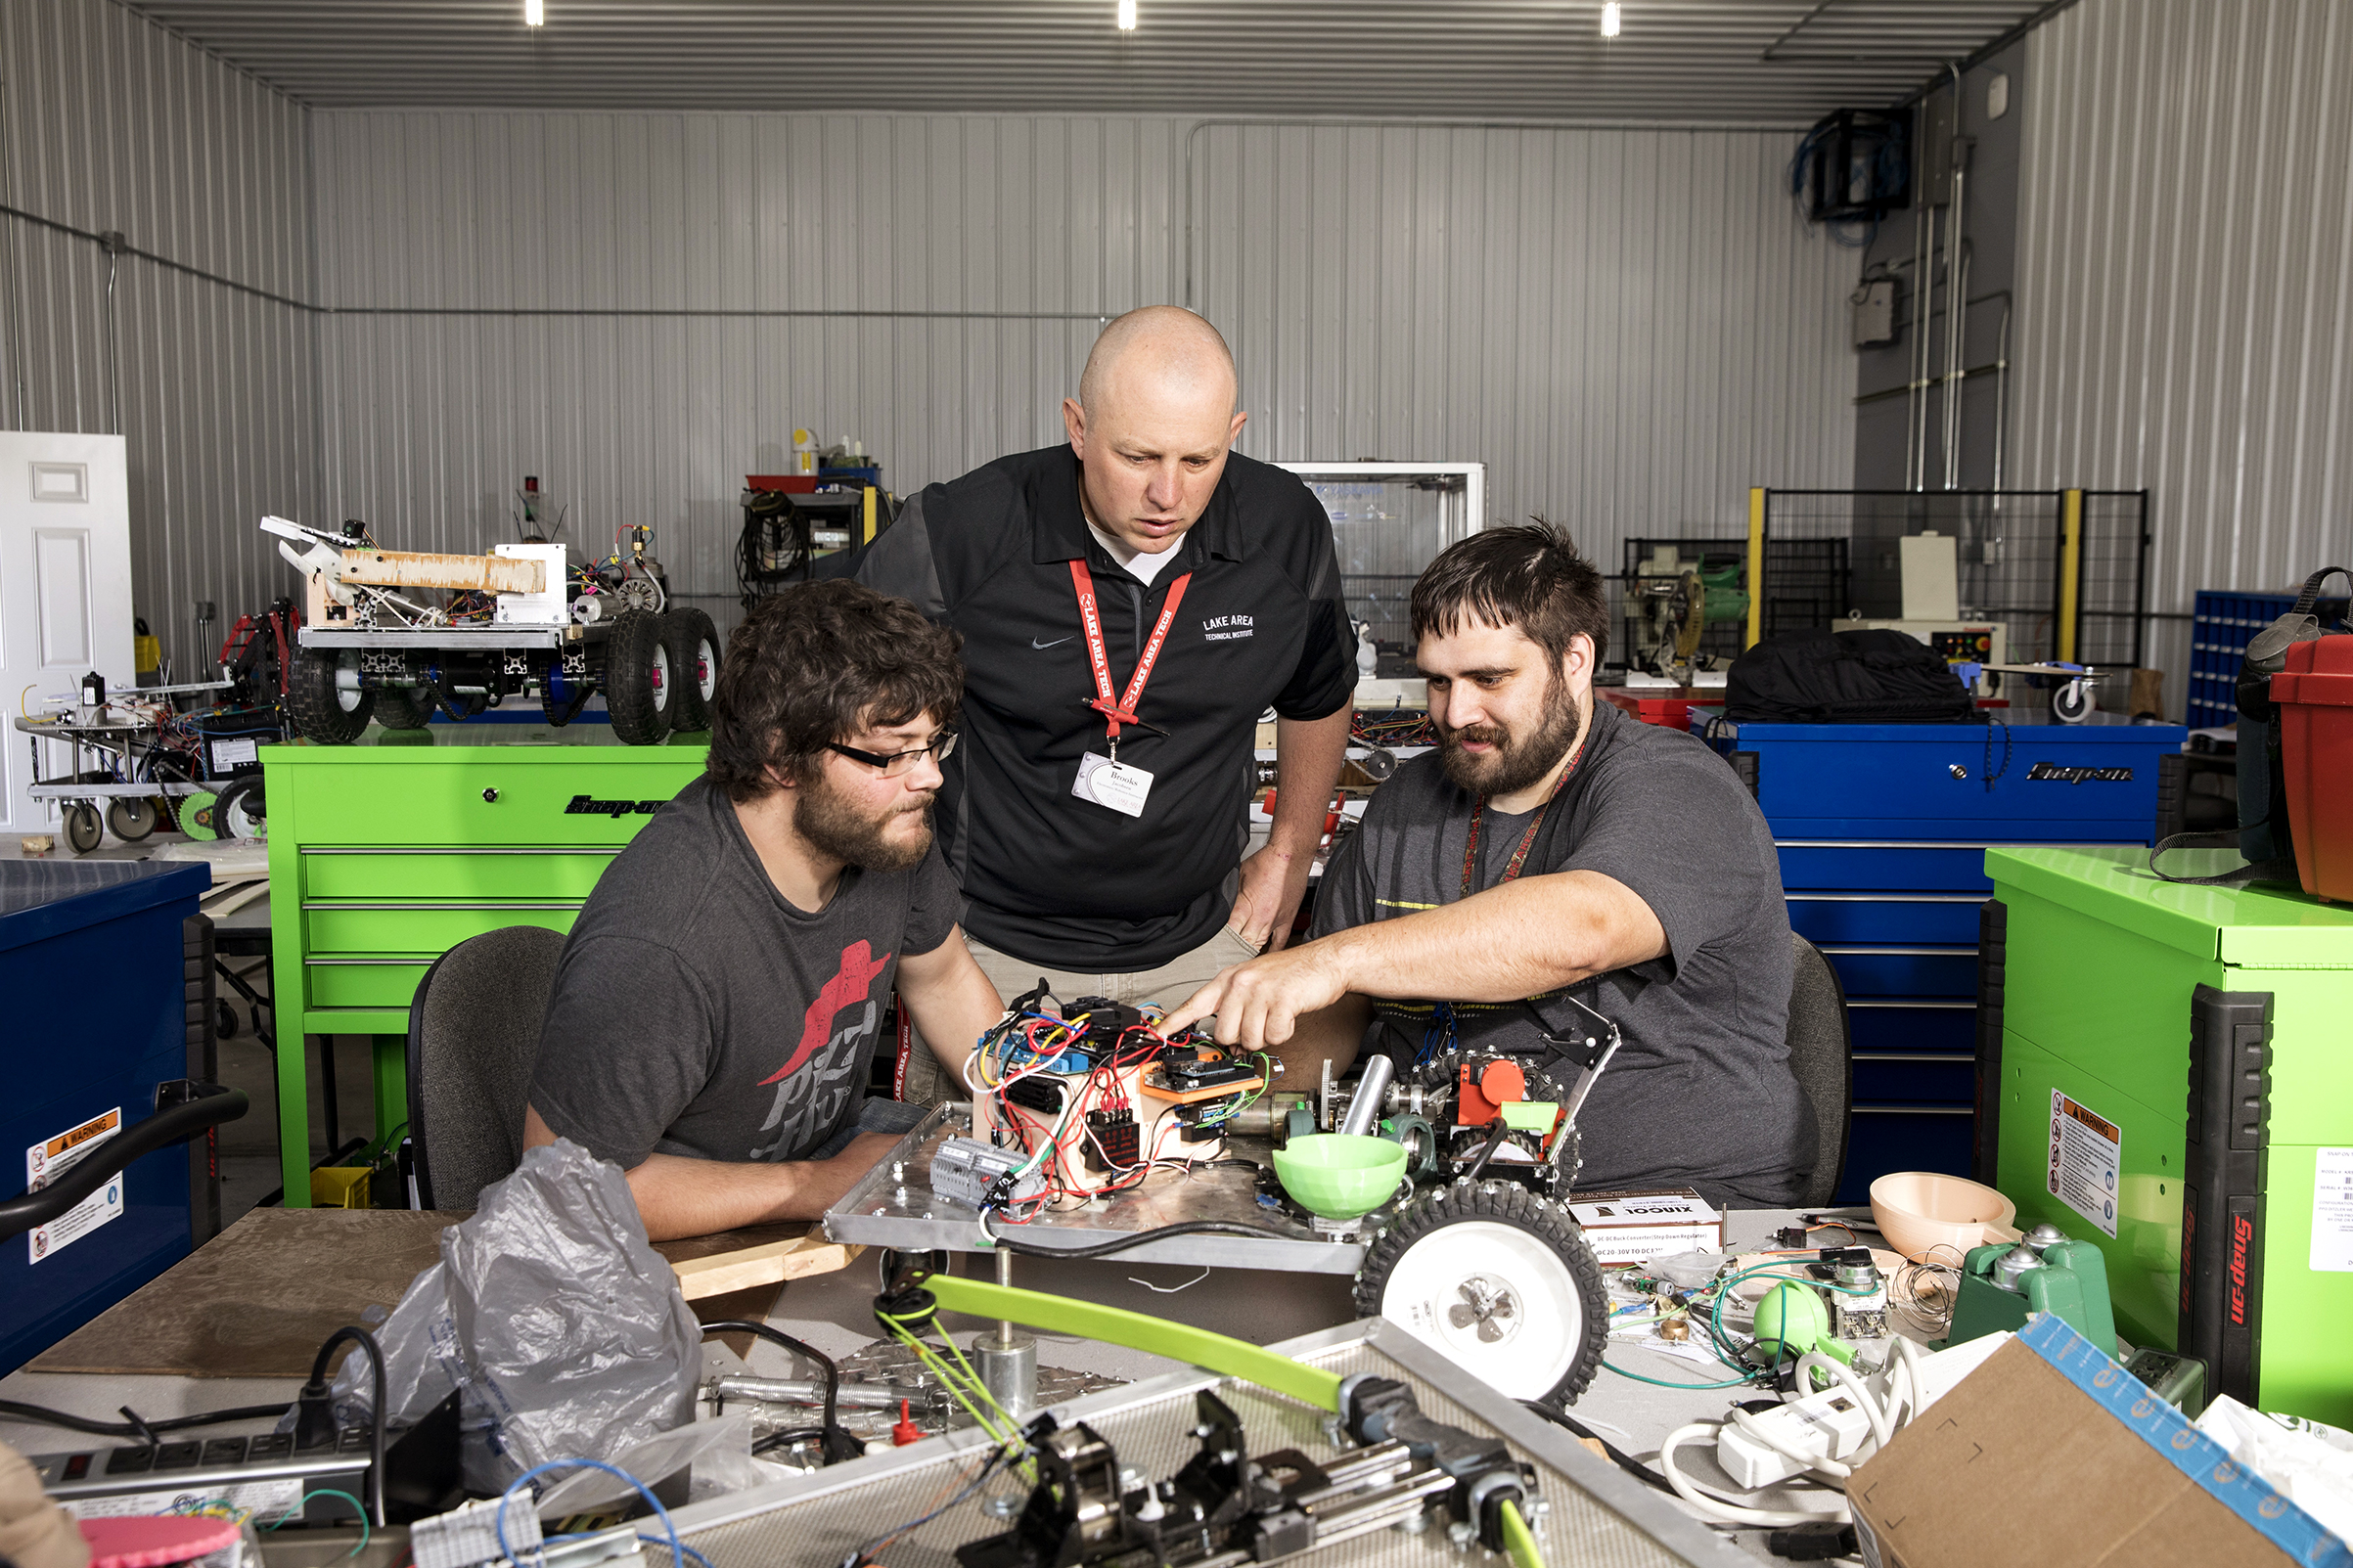 LATI instructor Brooks Jacobsen works with students in the school's robotics lab